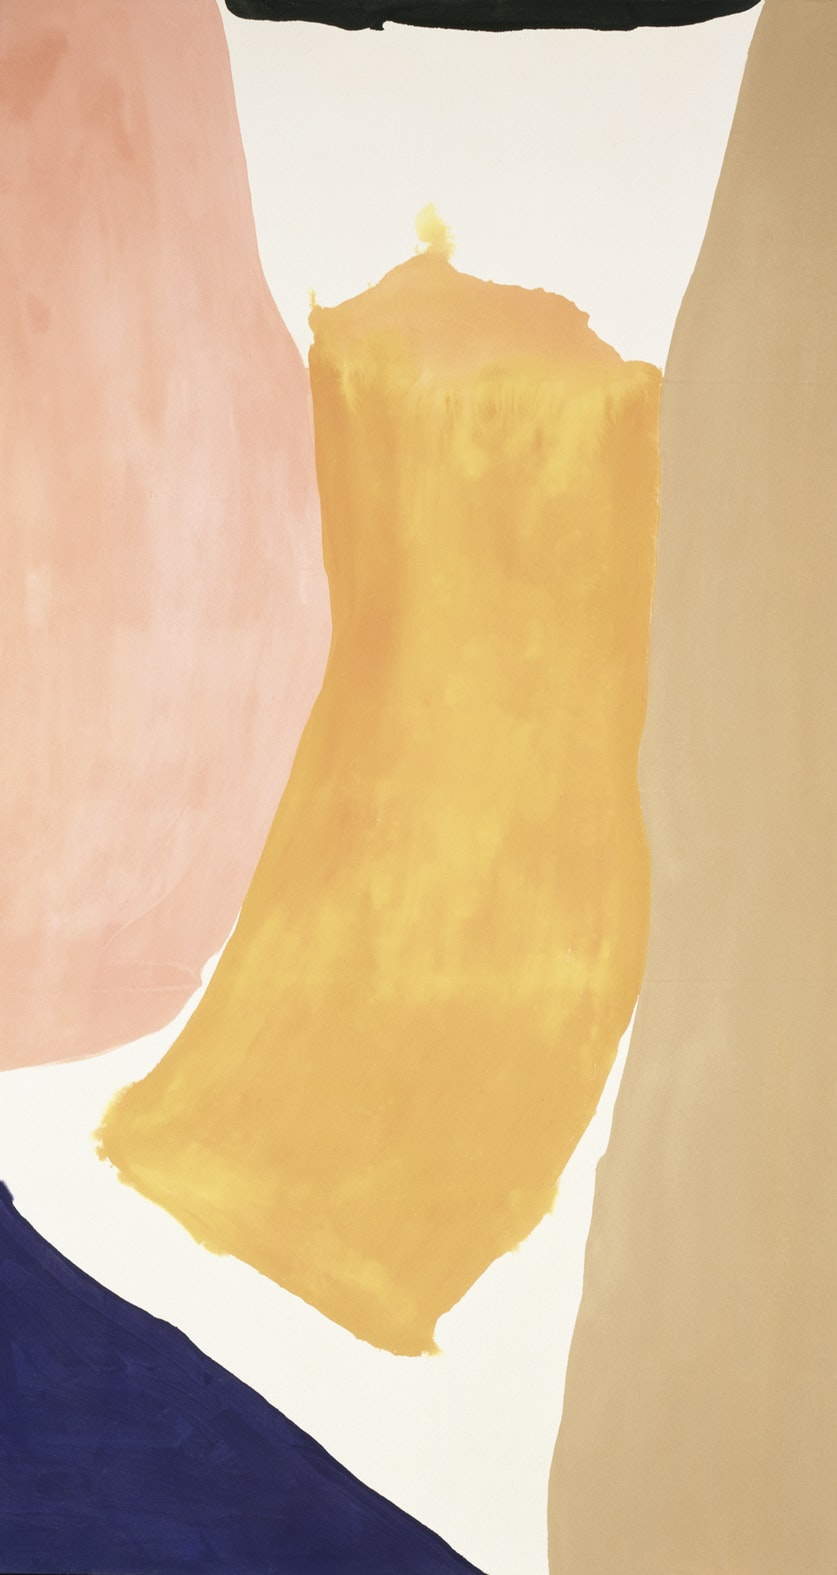 Helen Frankenthaler,  Alloy , acrylic on canvas, 1967